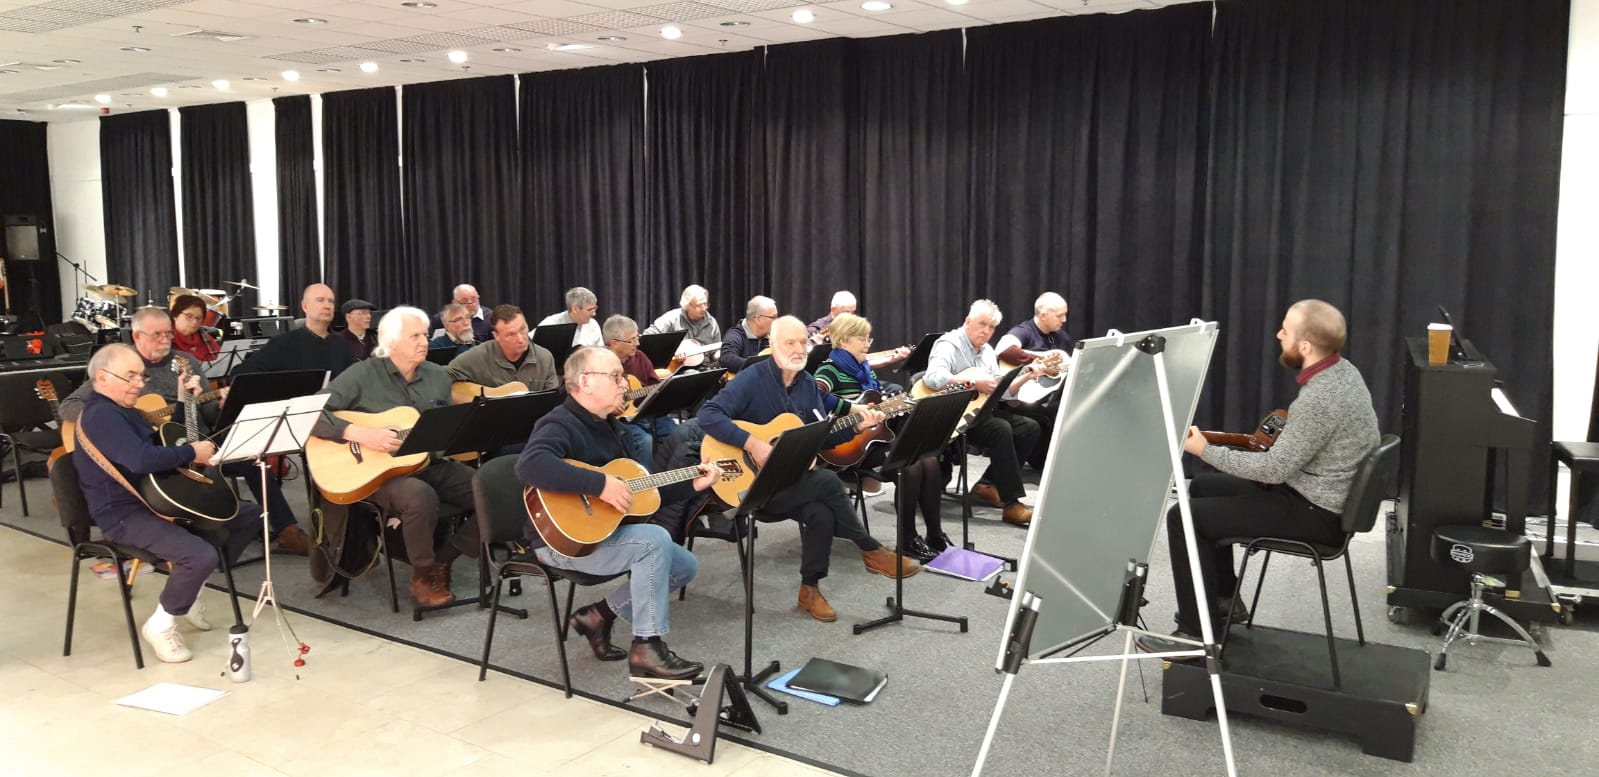 Bolton Music Service tutor Paddy leads a Guitar session in our Studio.